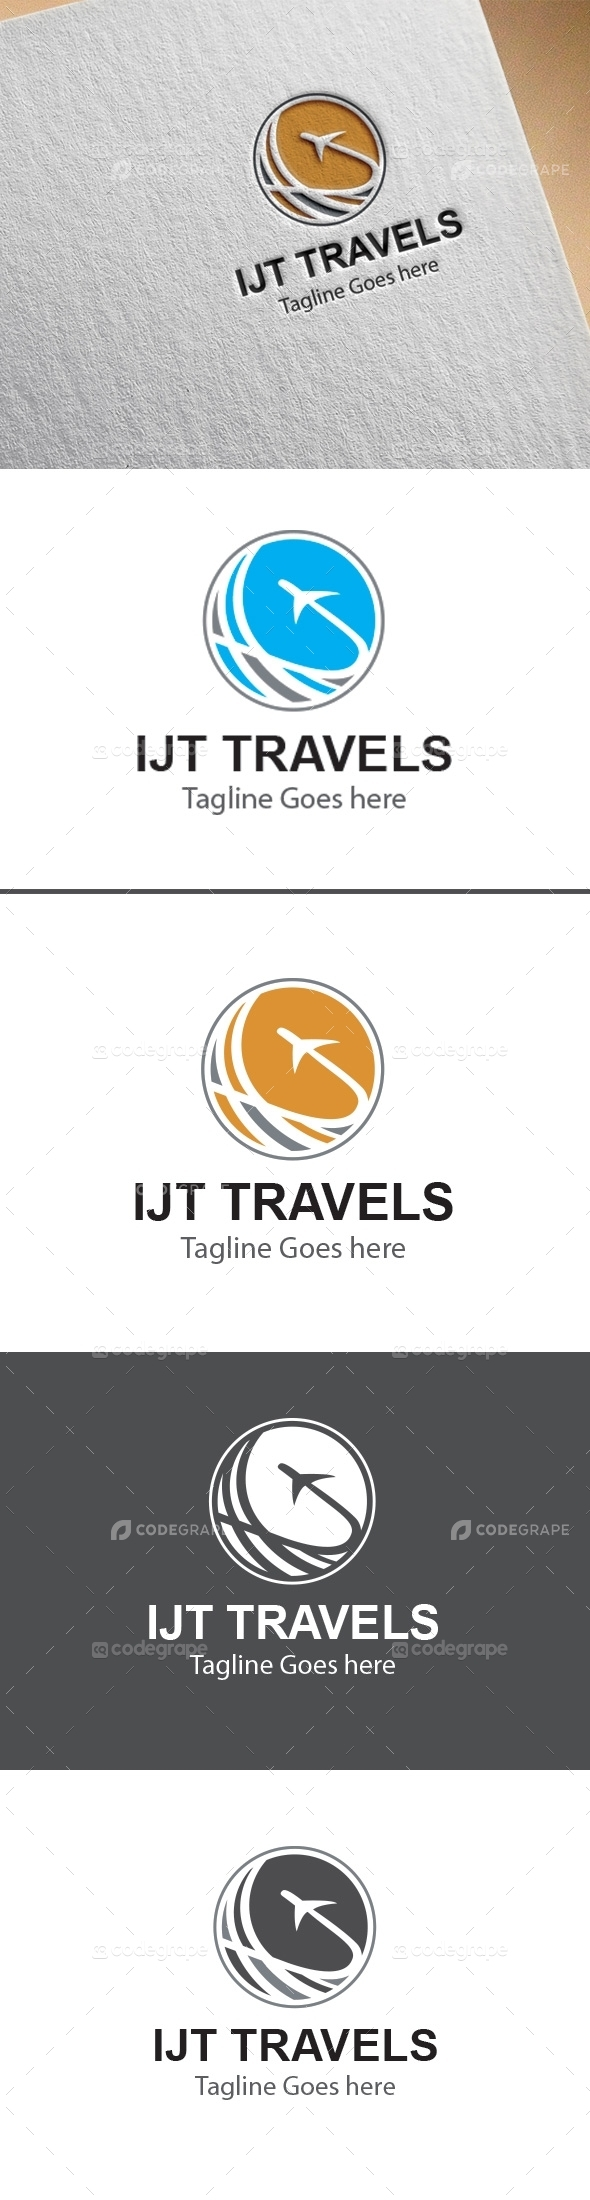 IJT Travels Logo